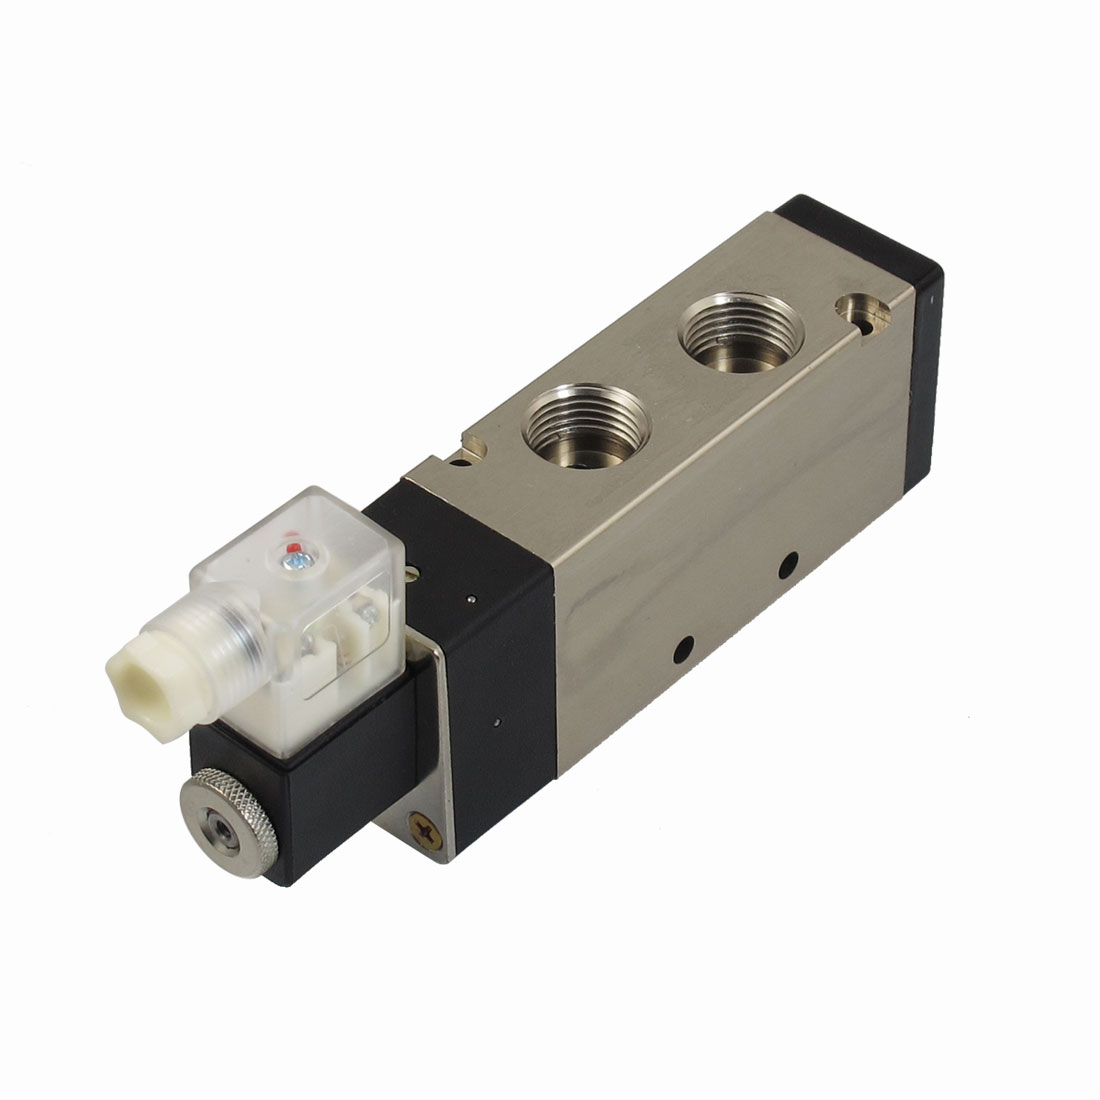 "AC 220V 2 Position 5 Way G1/2"" Exhaust Pneumatic Electromagnetic Solenoid Valve"